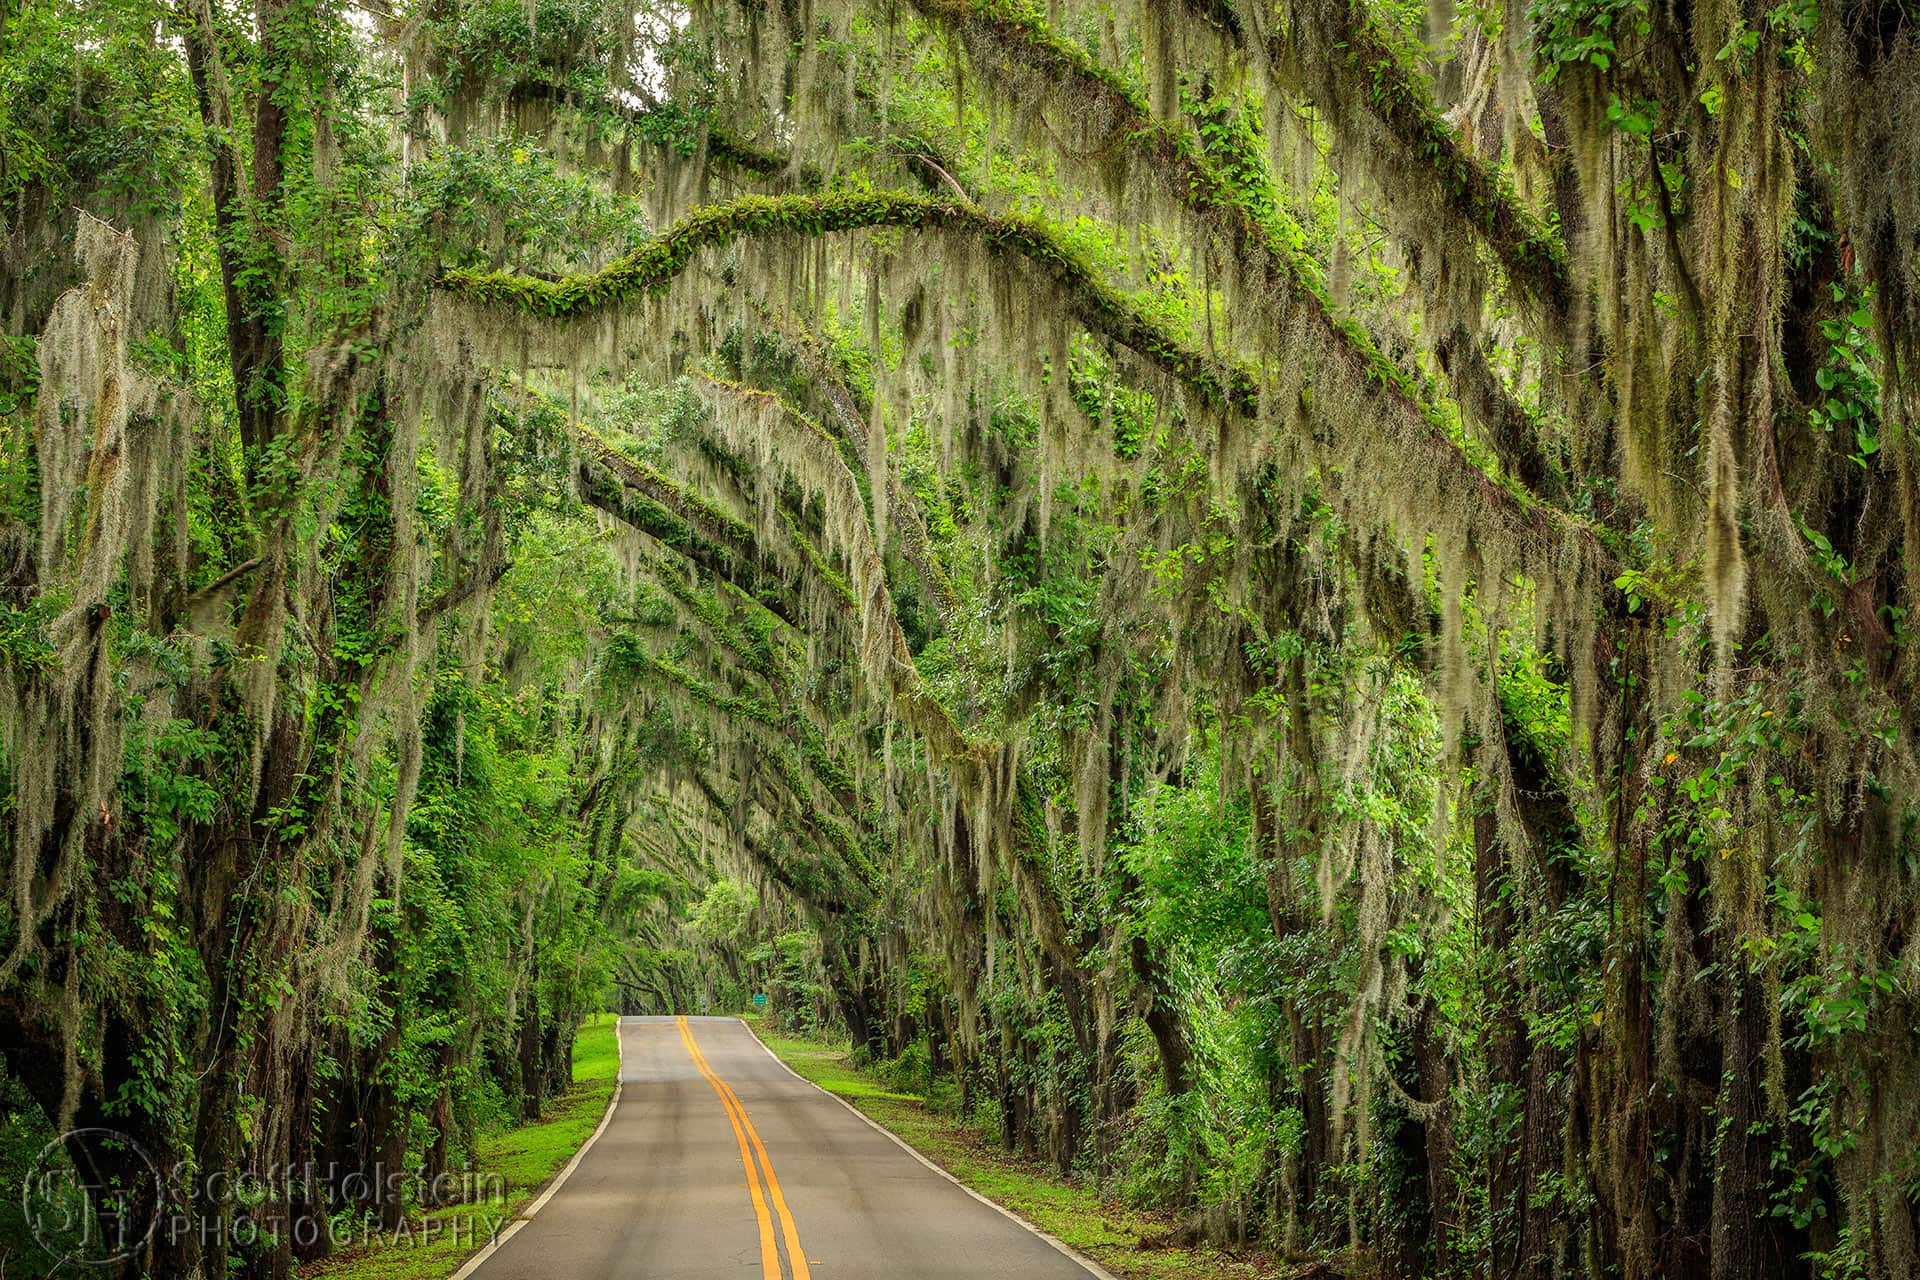 Miller Landing Road is a canopy road in Tallahassee that leads through a tunnel of trees to Miller Landing on Lake Jackson.